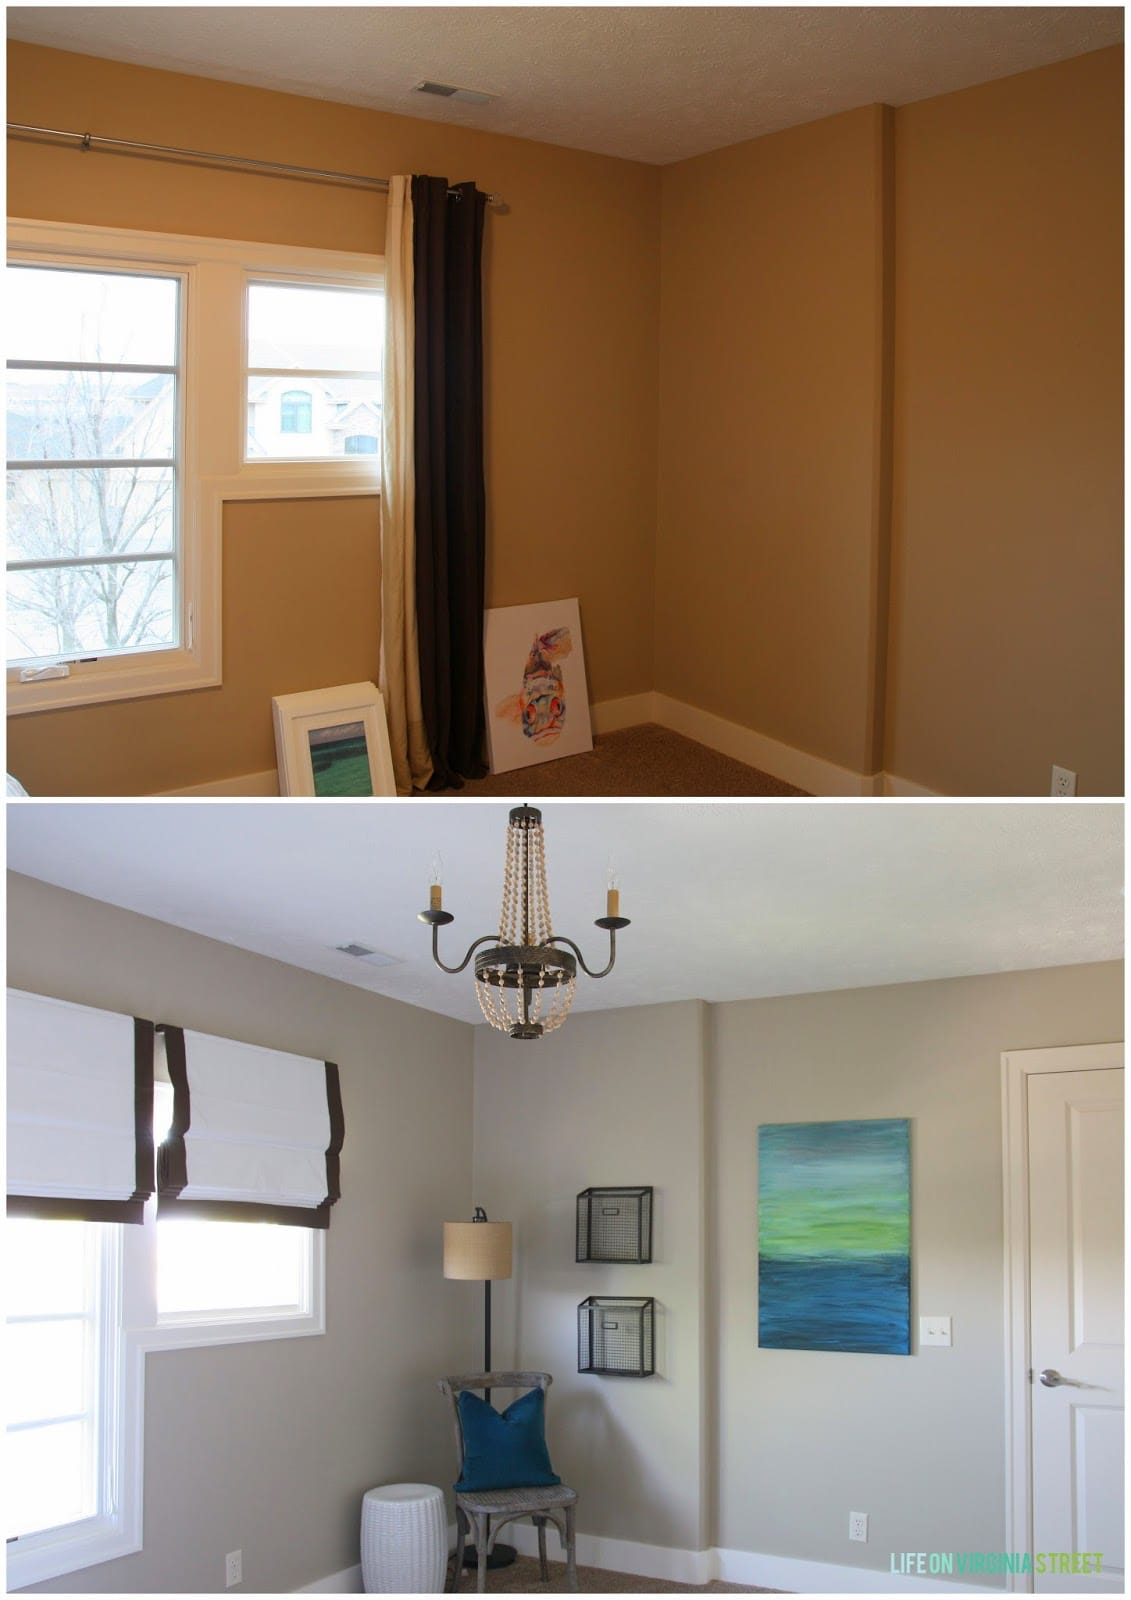 What a difference paint, lighting and window treatments make. Our guest room looks so much larger after the update.